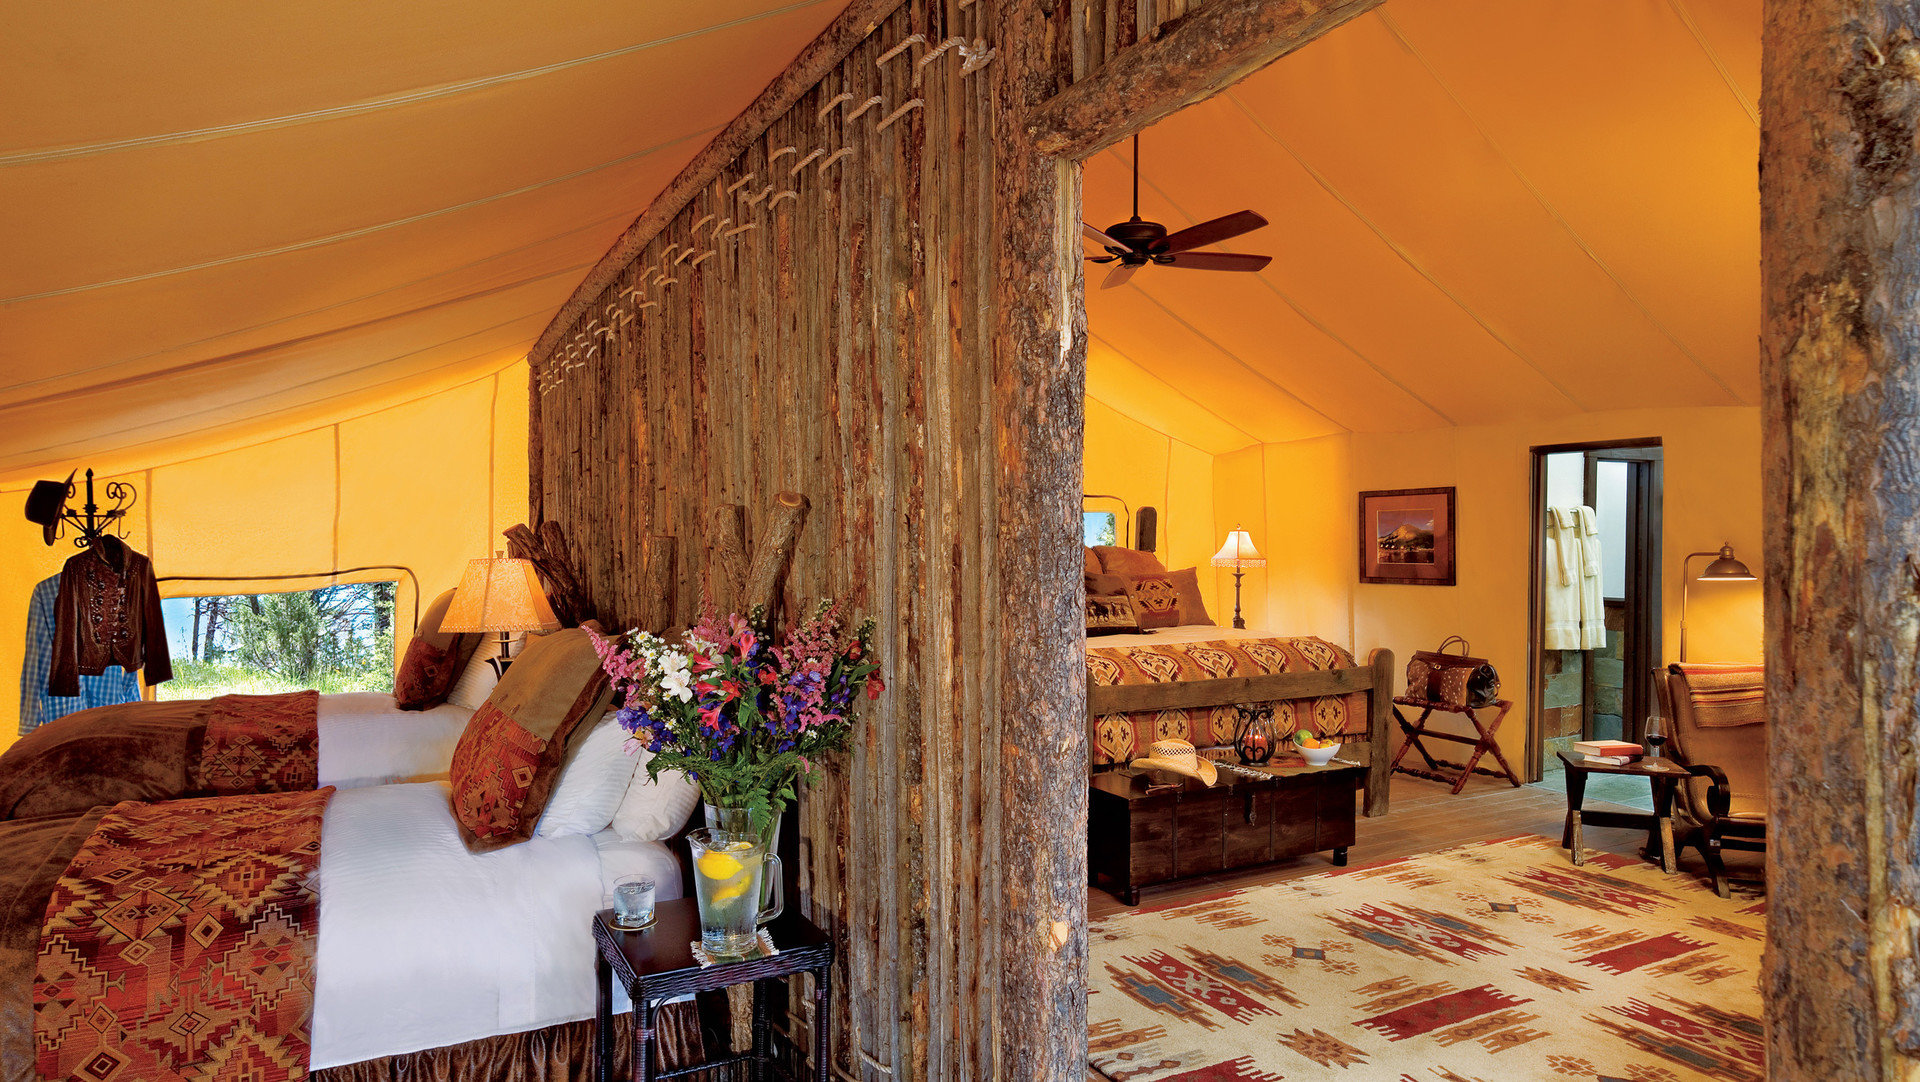 Glamping Hotels Luxury Travel Montana Outdoors + Adventure Trip Ideas sofa property house living room cottage Villa home farmhouse Bedroom mansion Suite